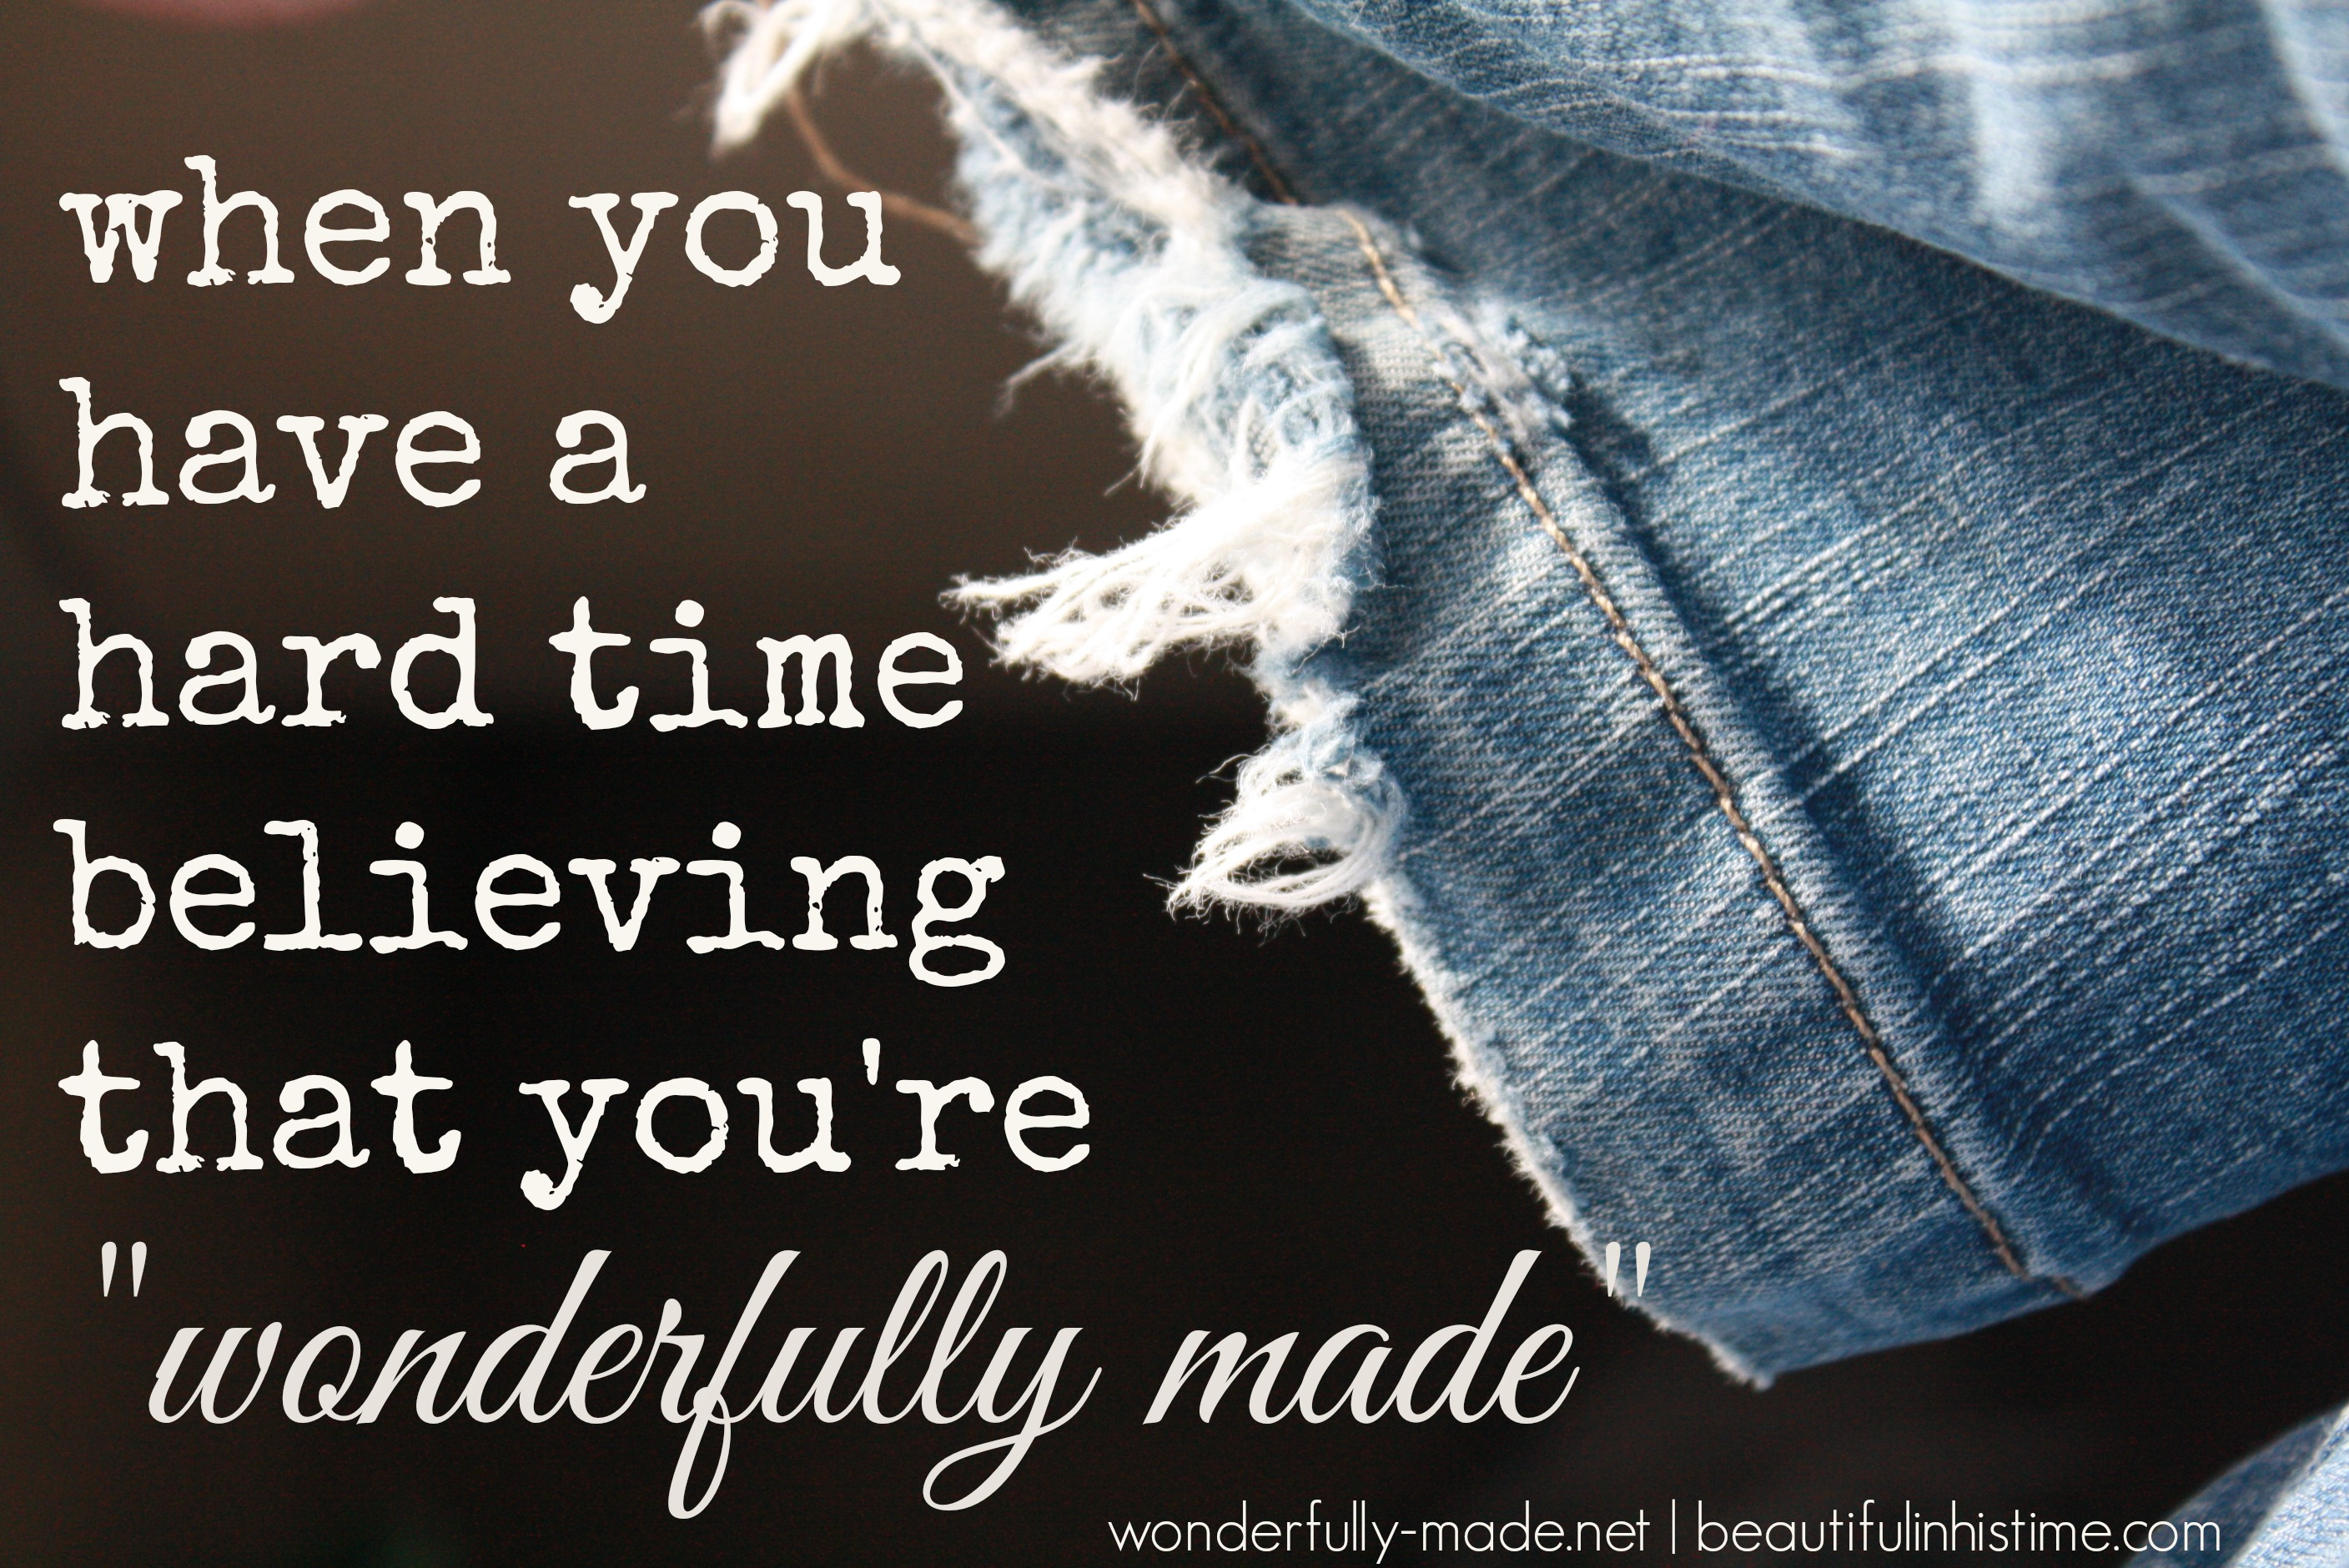 when you have a hard time believing that you're wonderfully made